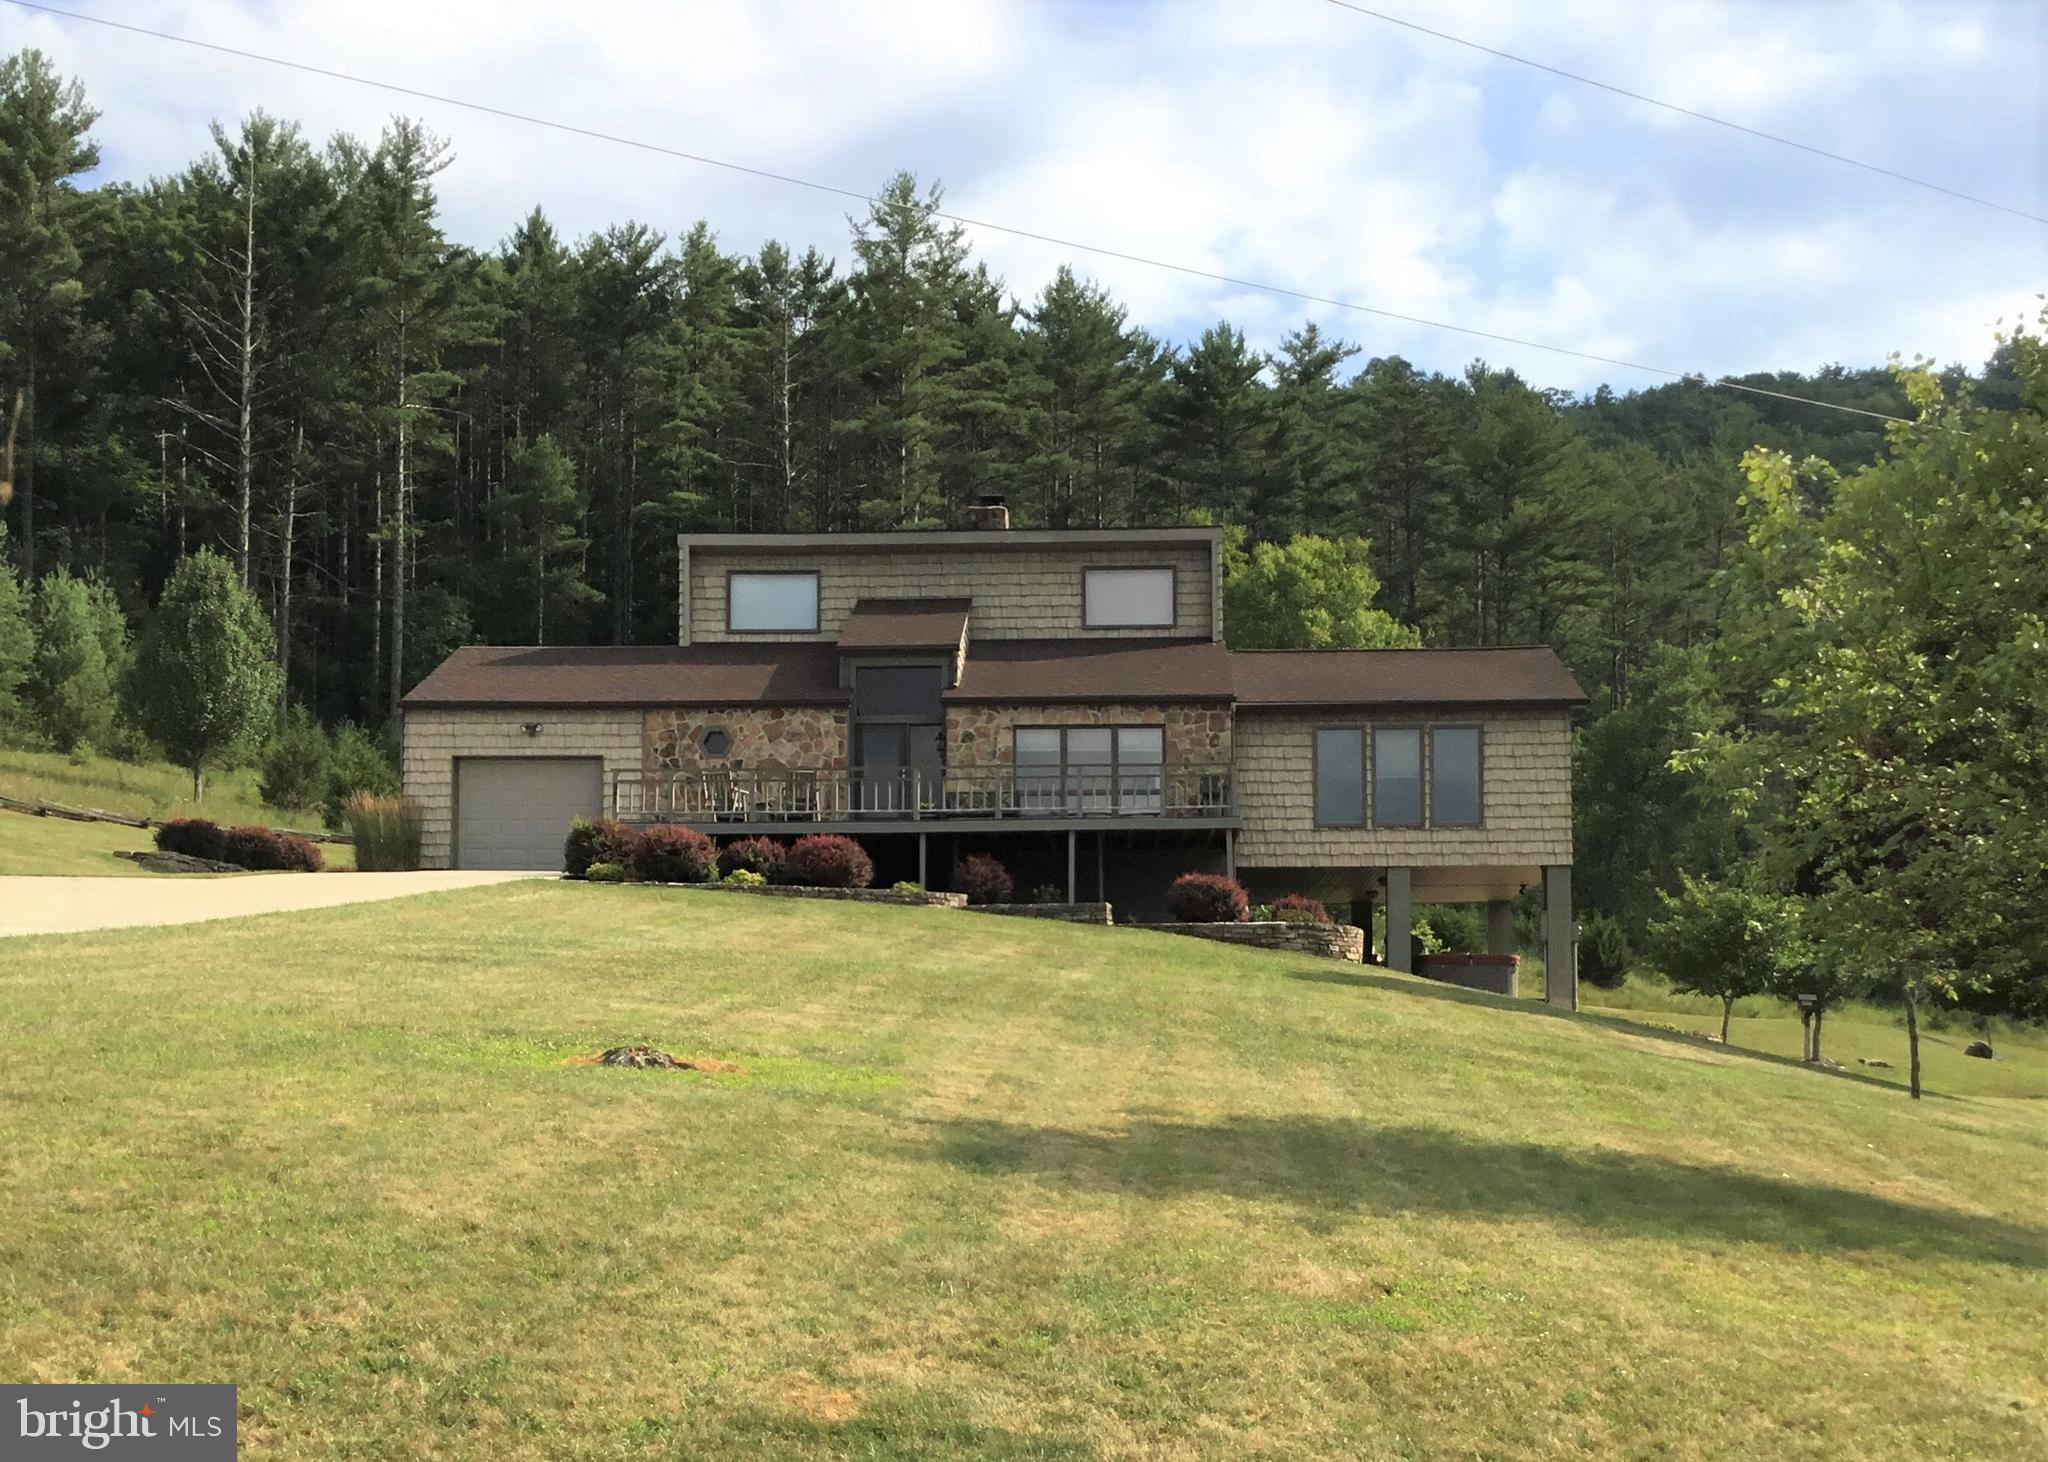 582 THORNY MEADOWS ROAD, FRANKLIN, WV 26807